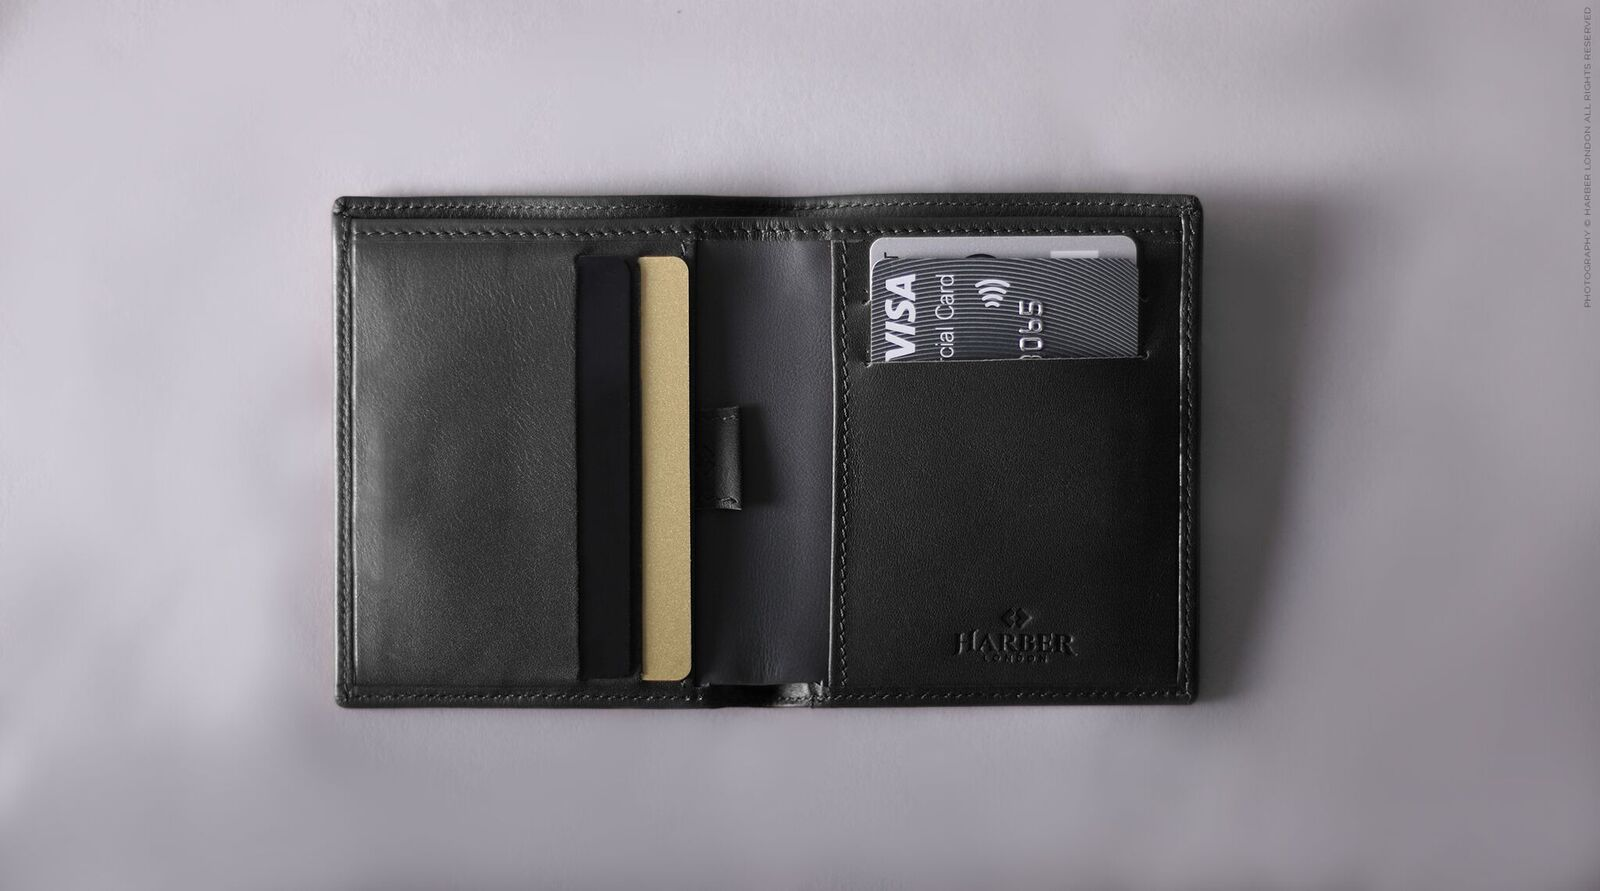 c73a4426b879 Harber London Card Wallet Review and Price 2019